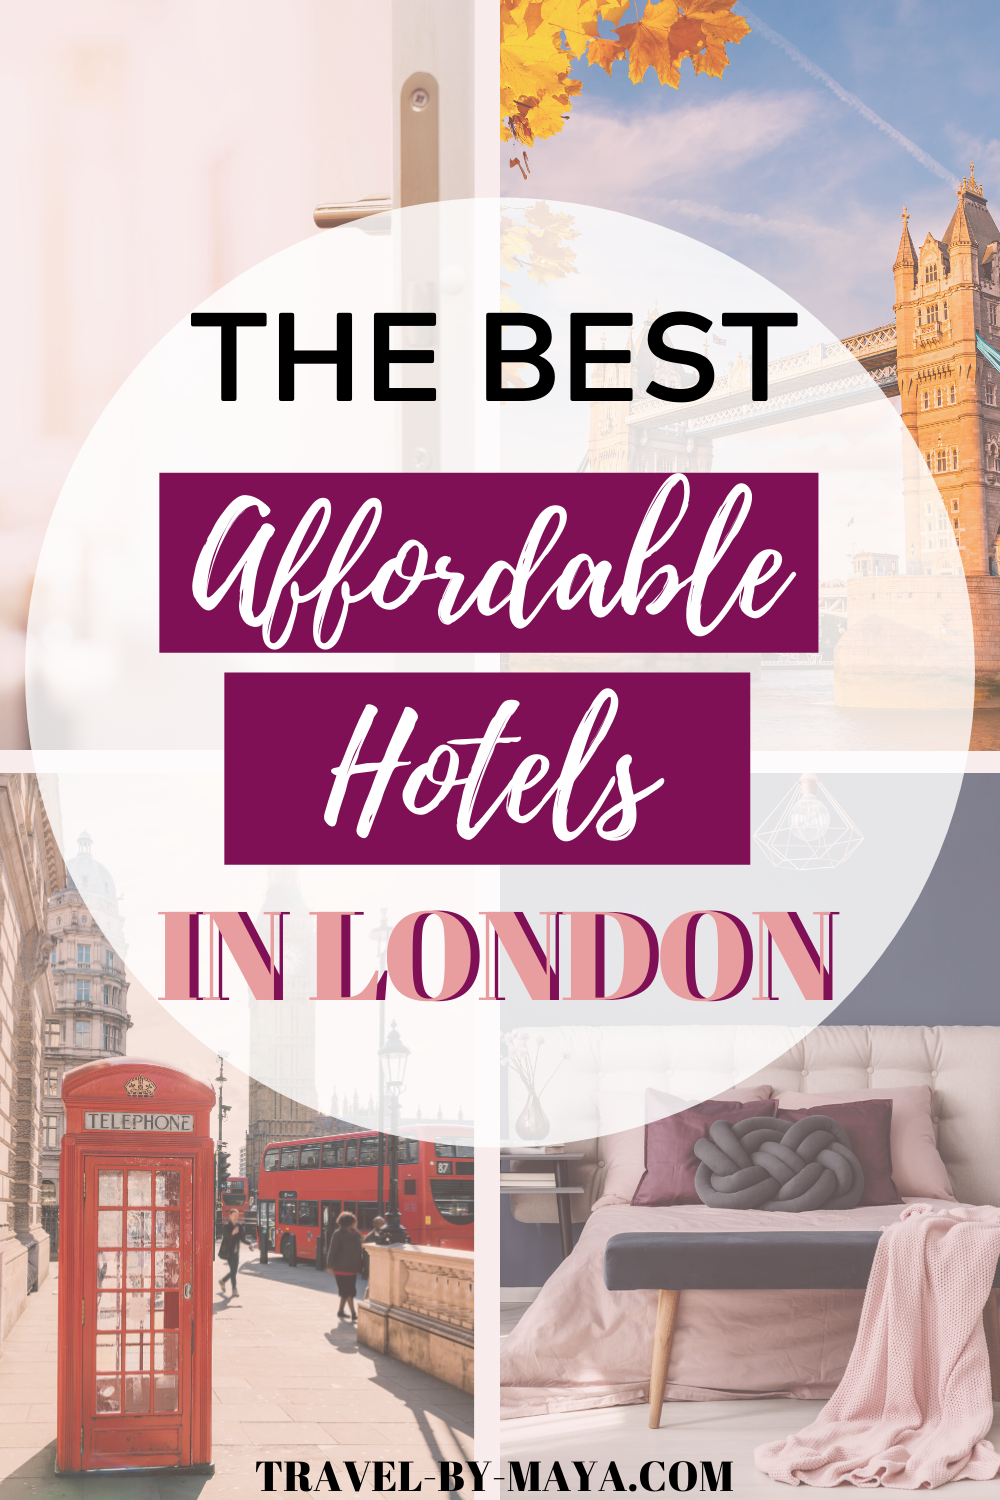 Do you want to know how to travel London on a budget? Stay at an affordable hotel! Click through for a full list of the best affordable hotels in London! #londonhotels #londononabudget #travellondon